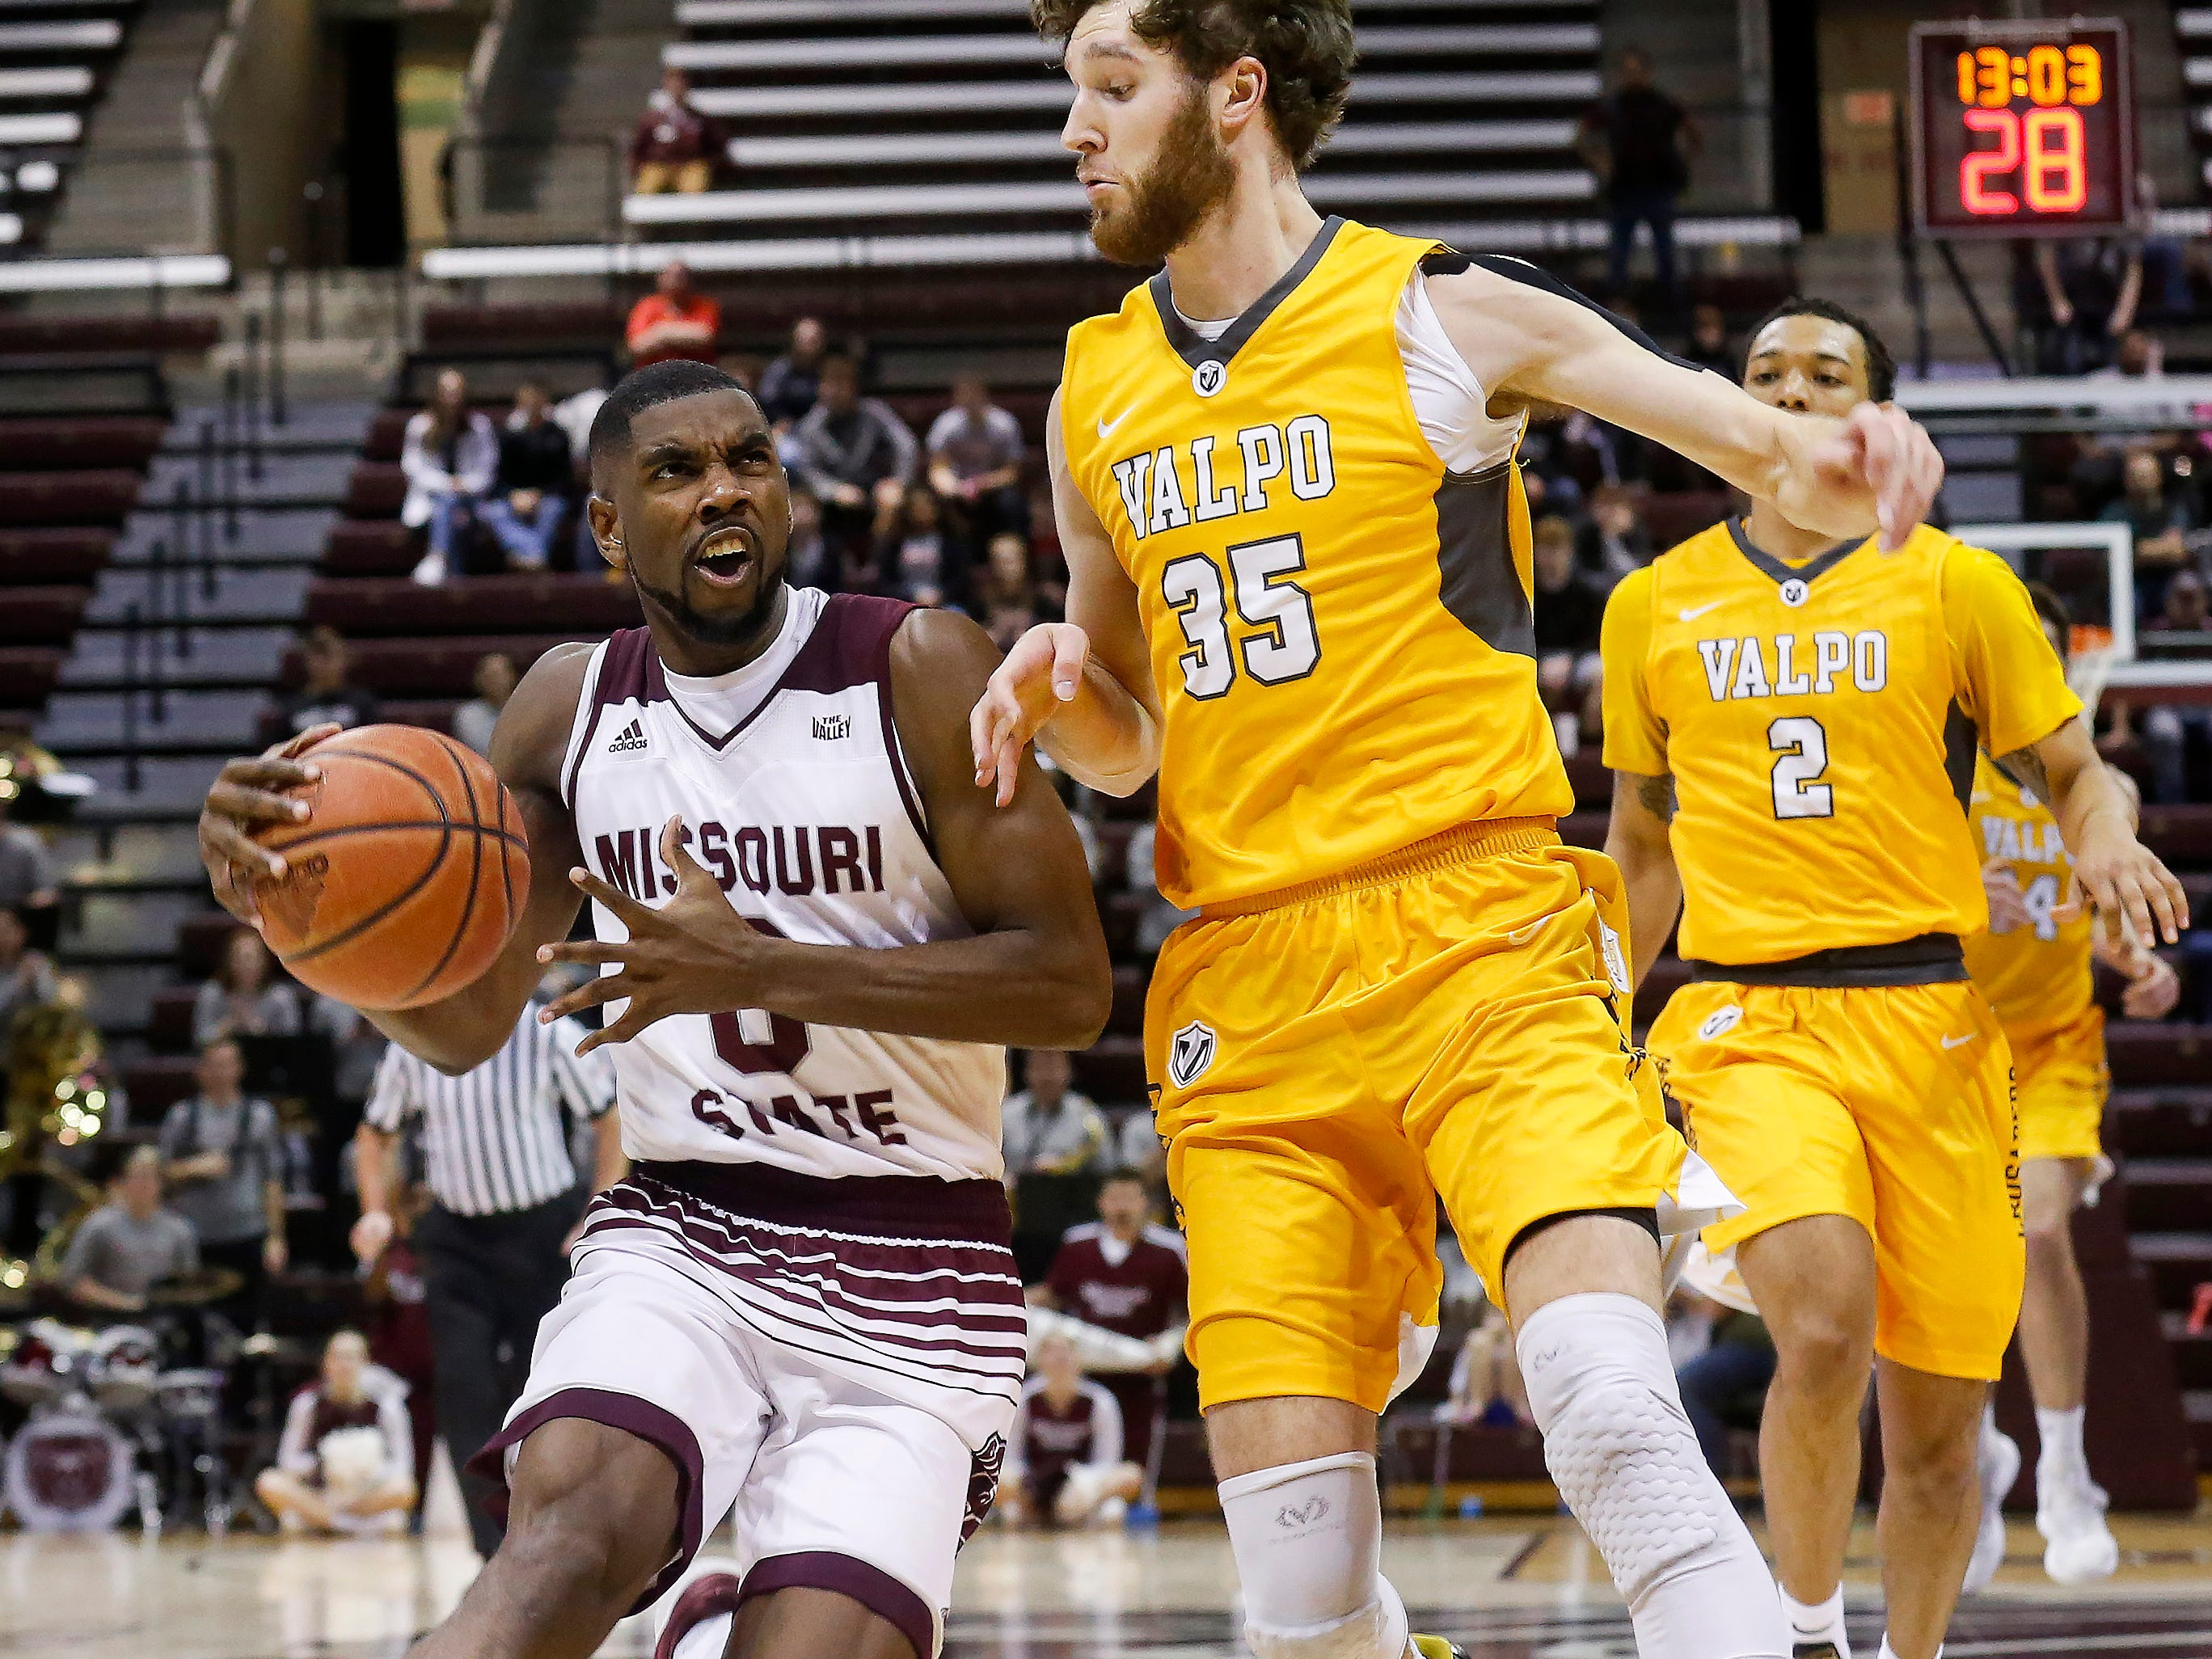 Josh Webster, of Missouri State University, drives to the net during the Bears 82-66 loss to Valparaiso at JQH Arena on Saturday, Jan. 5, 2018.